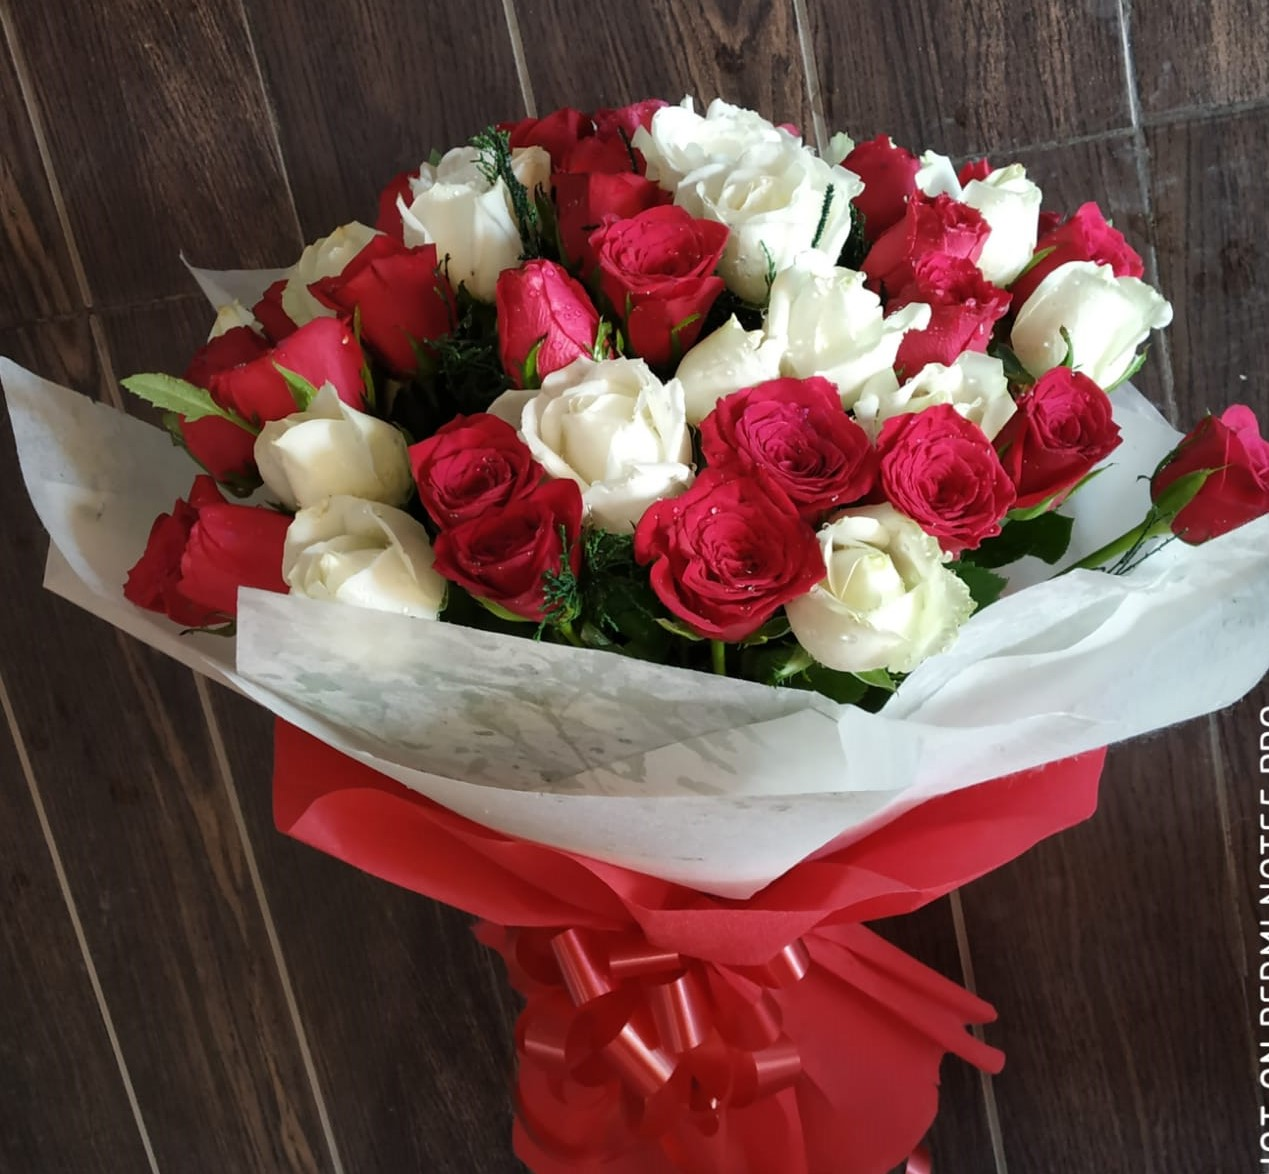 send flower Hazrat Nizamuddin DelhiRed & White Roses in Duble Layer Packing